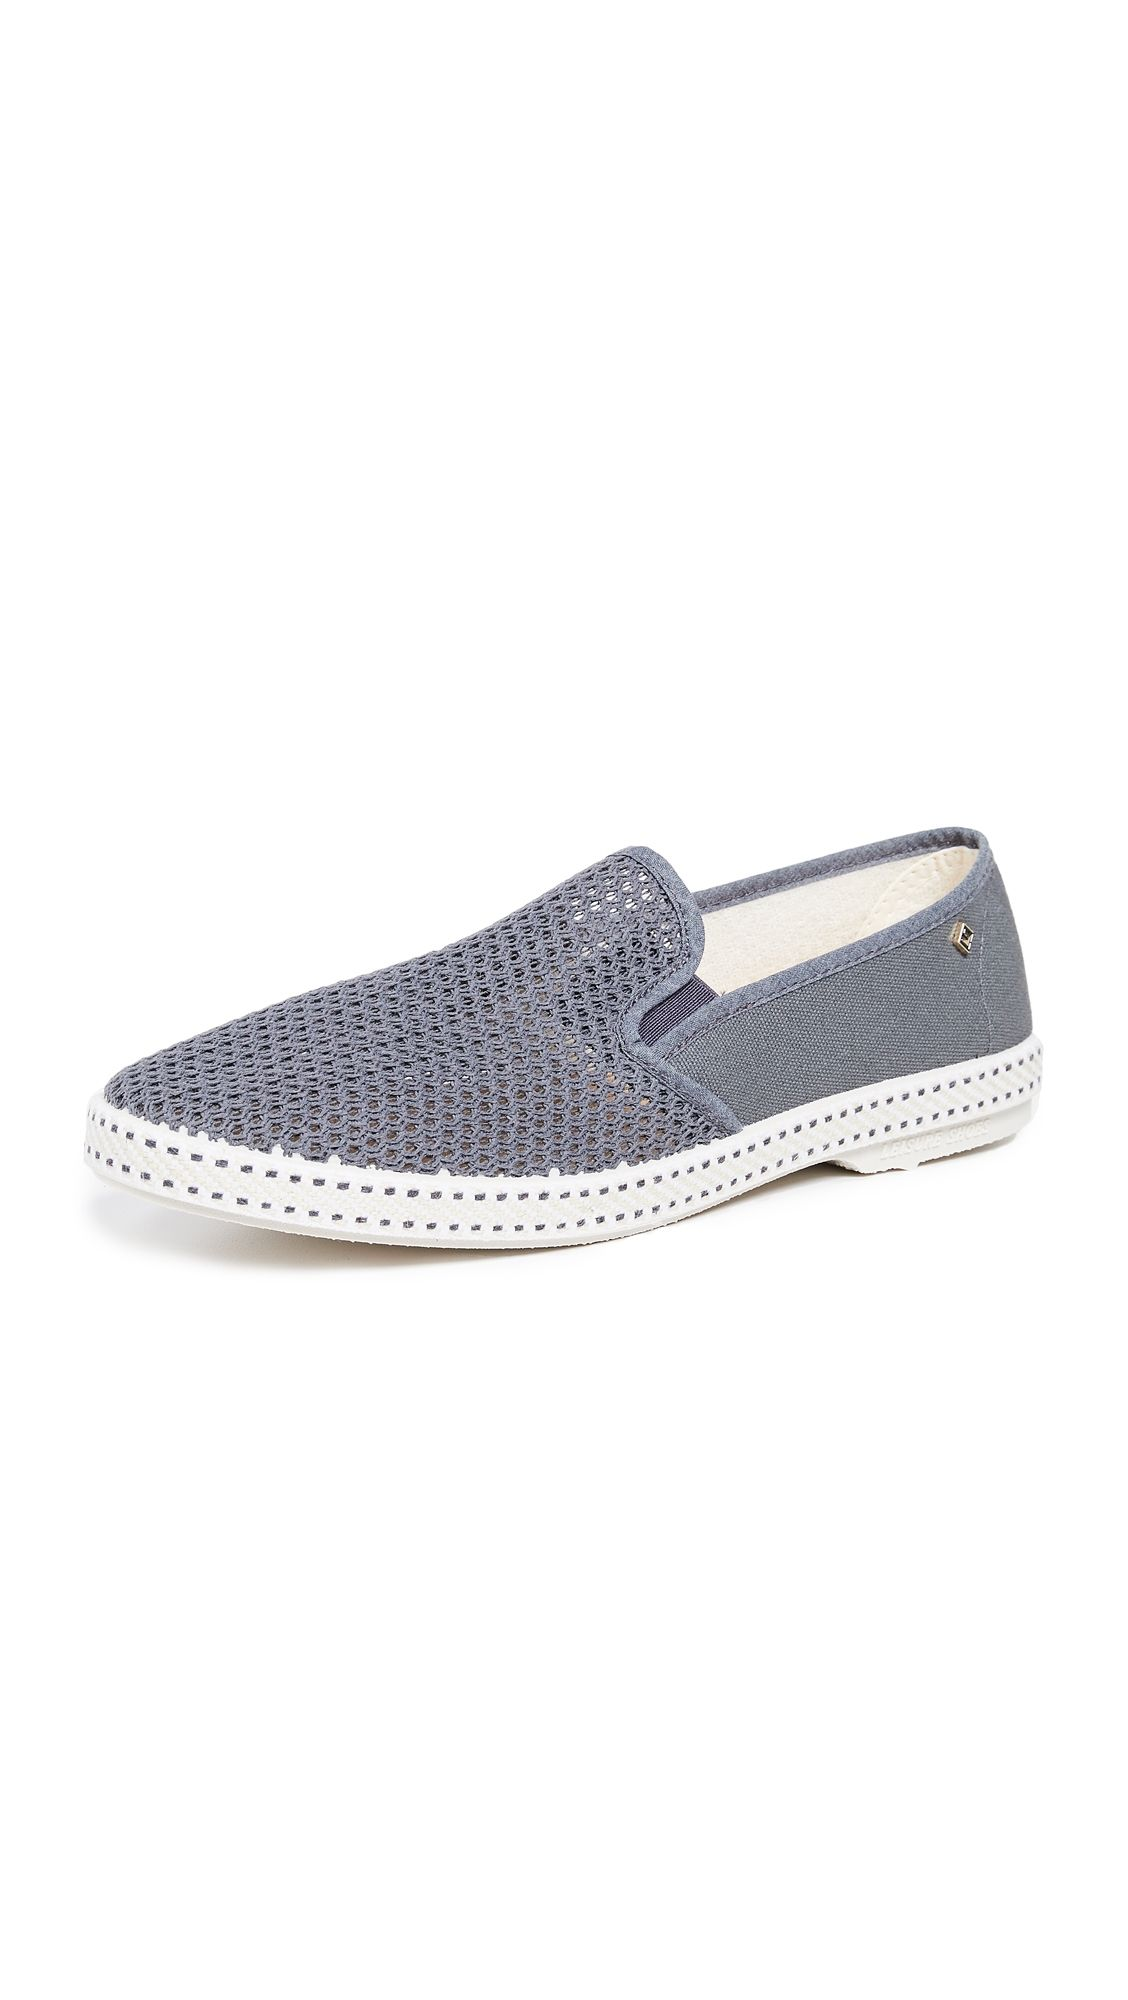 e3c2945f285 RIVIERAS CLASSIC 20 SLIP ON SNEAKERS.  rivieras  shoes